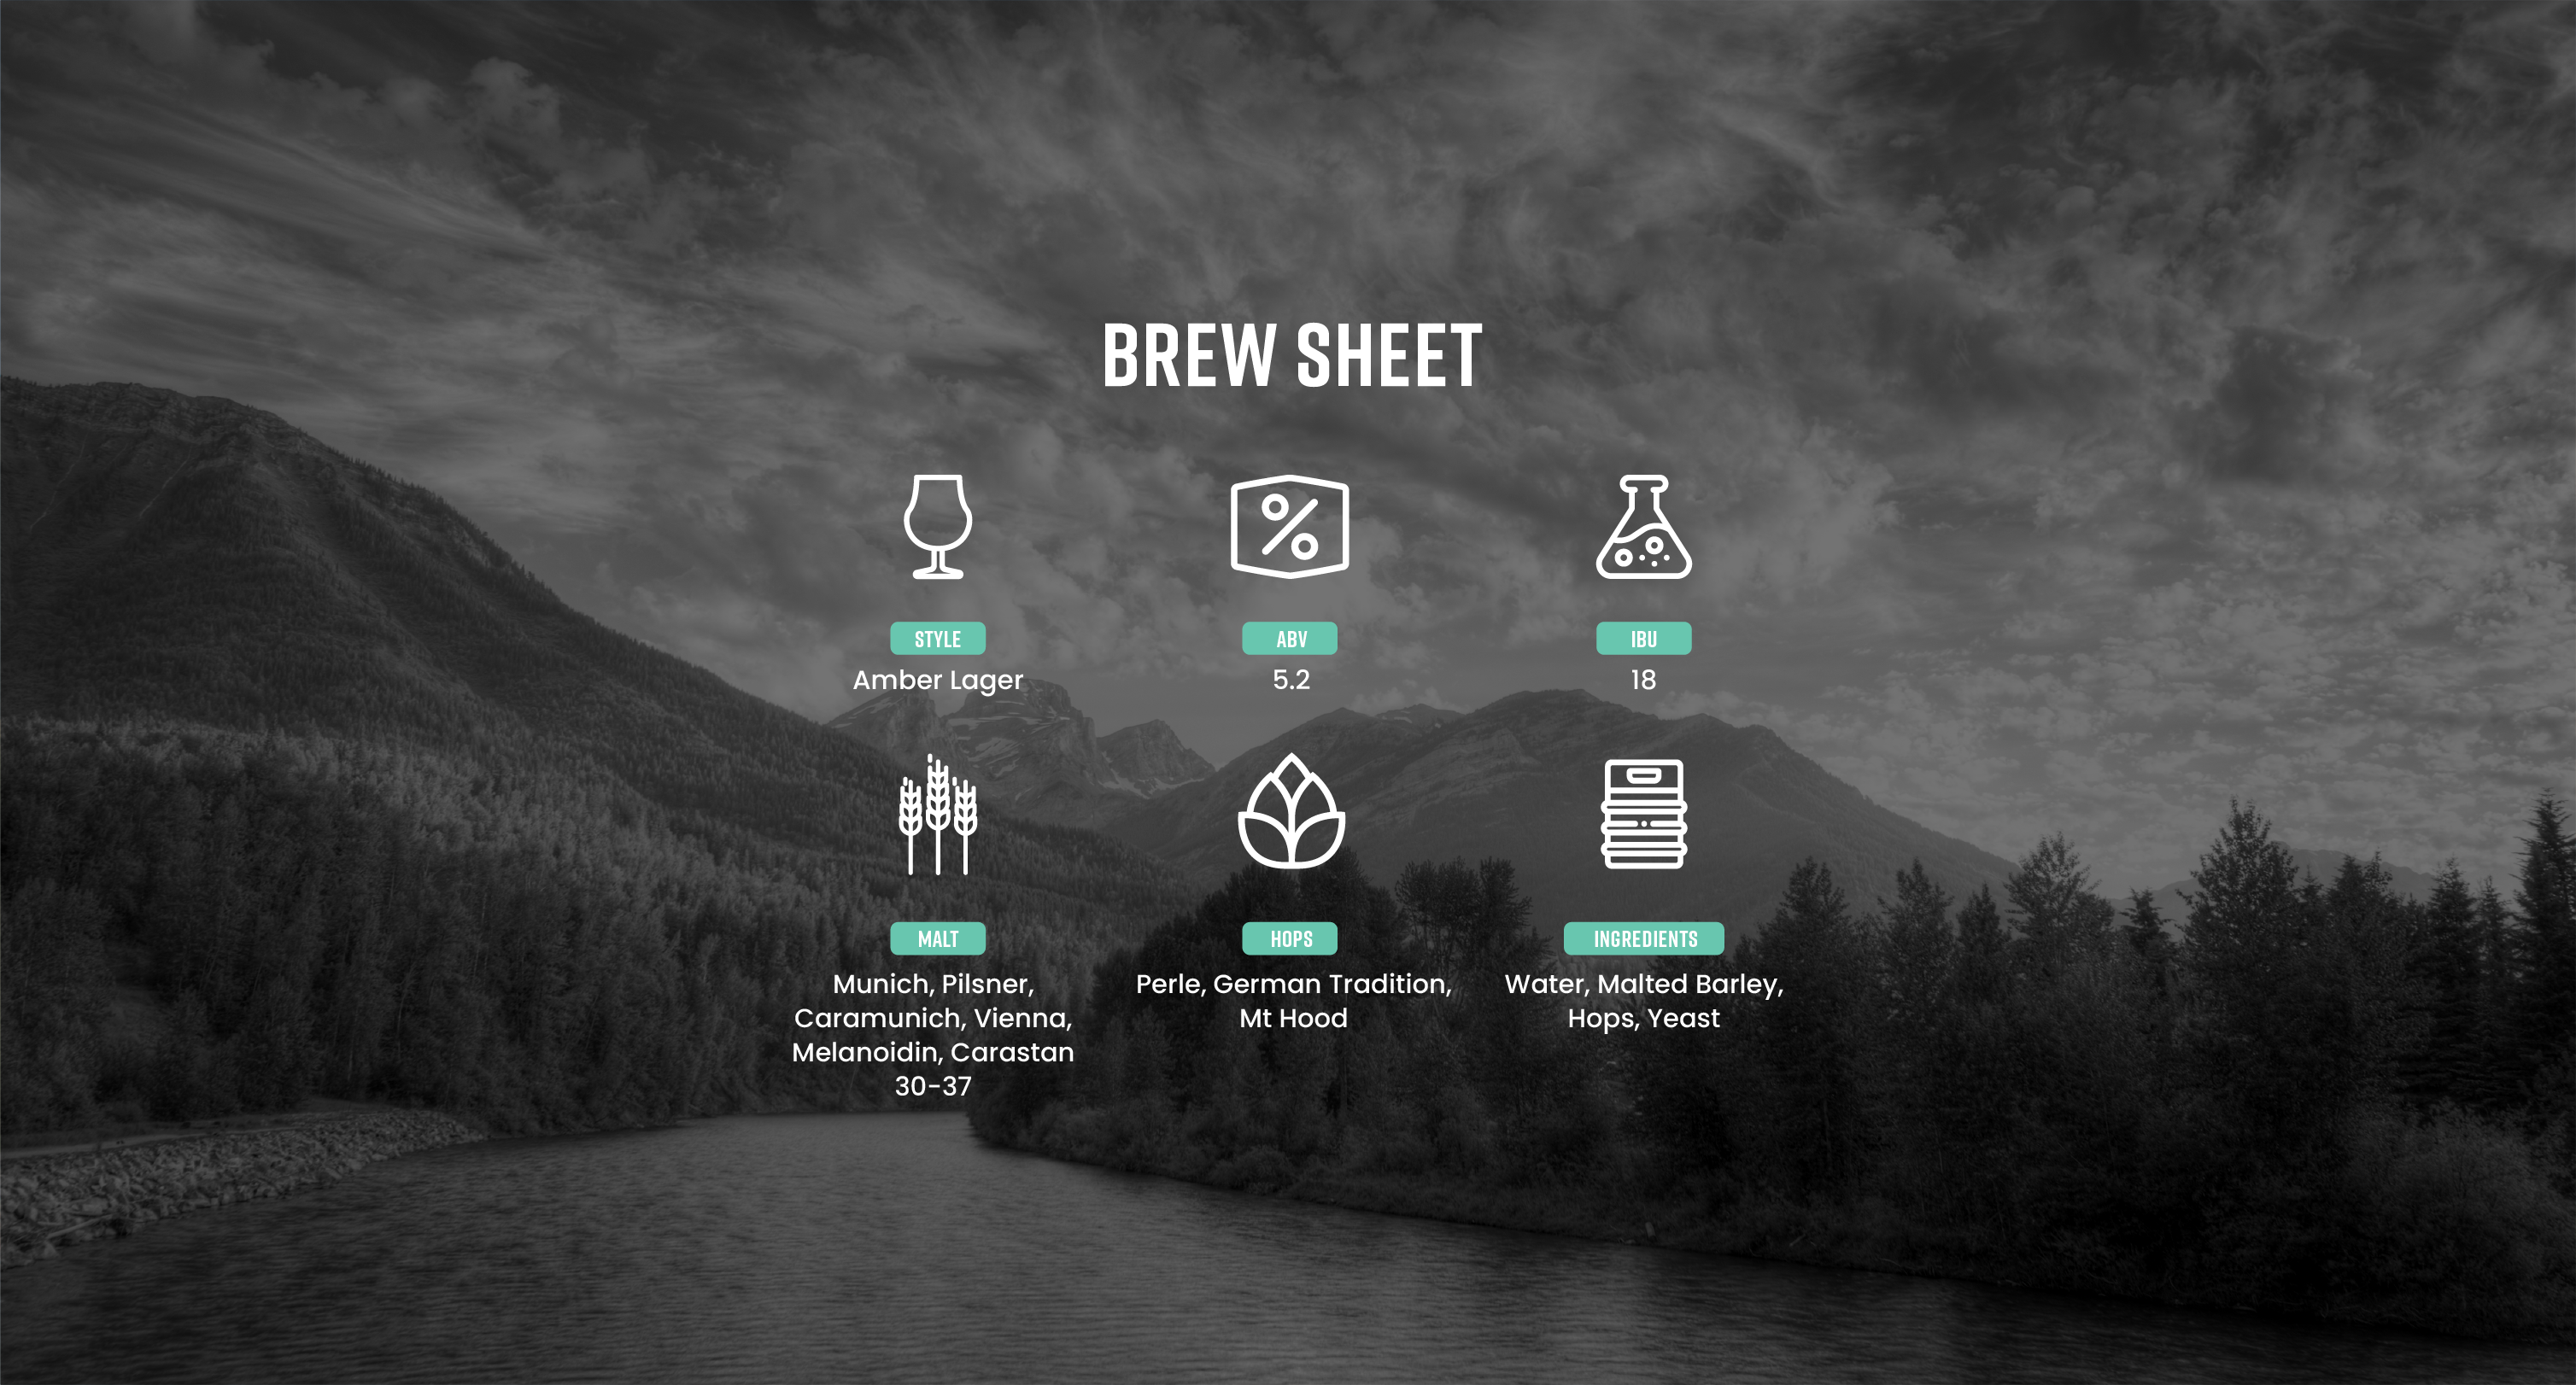 The Professor Brew Sheet